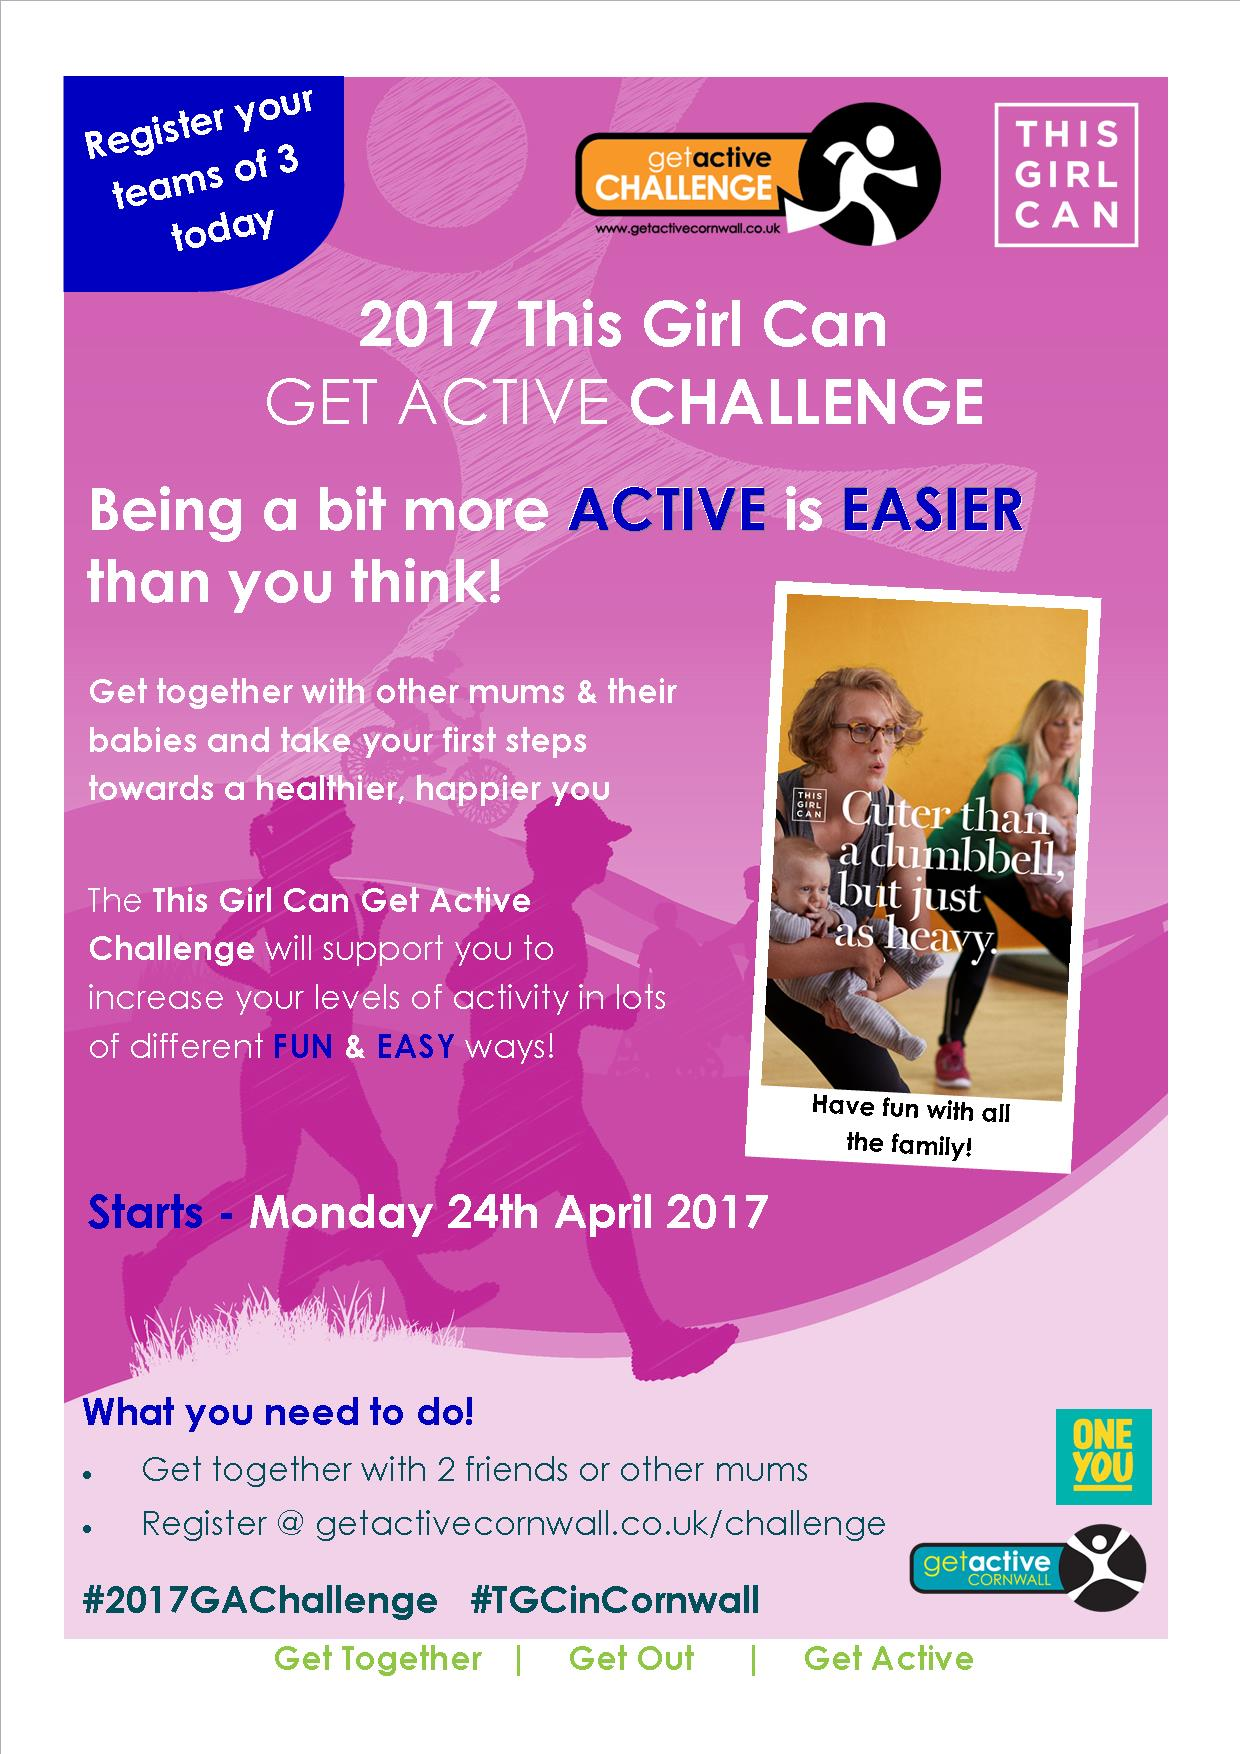 poster advertising Get Active Challenge